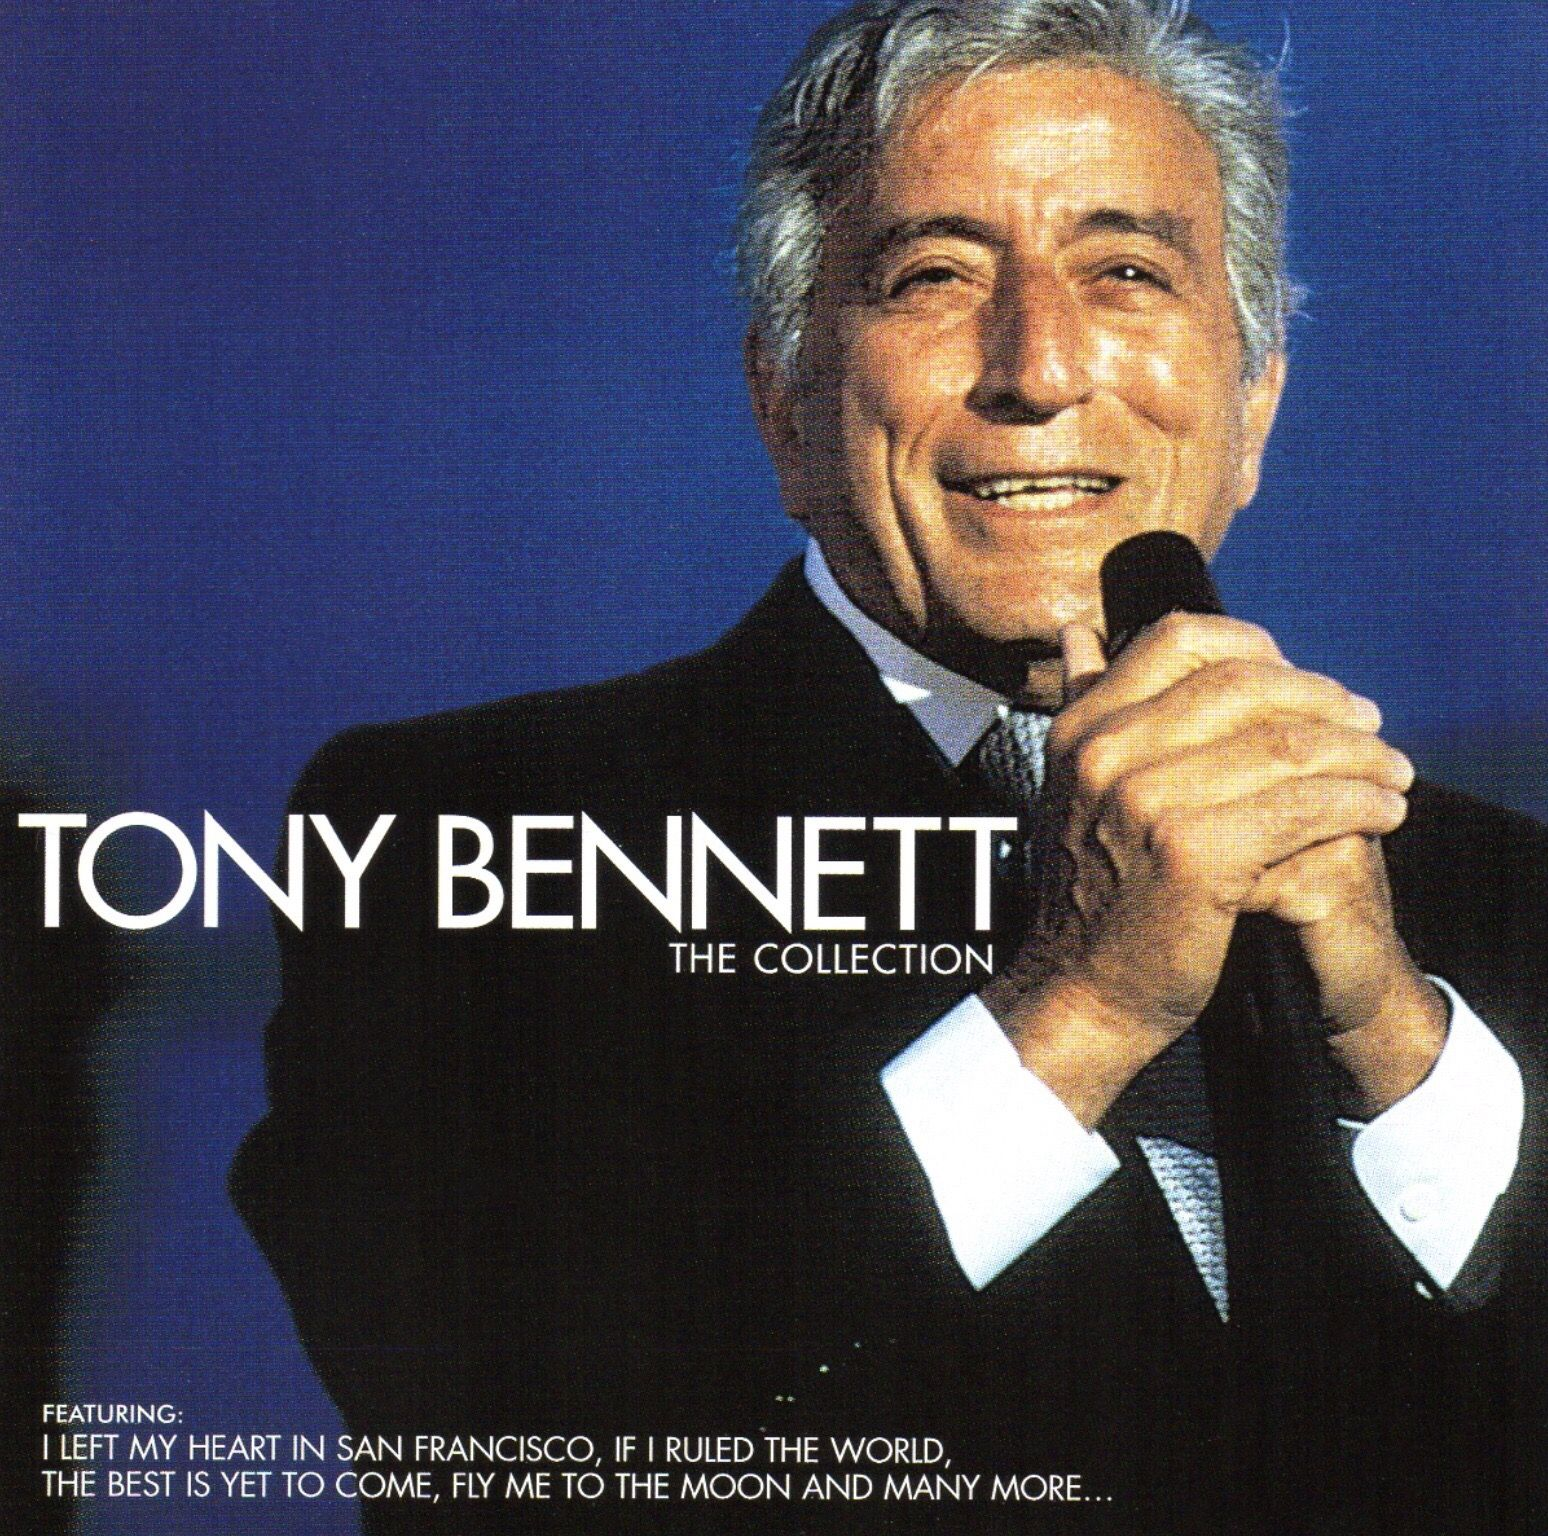 Lady Gaga And Tony Bennett To Release Another Jazz Album Together